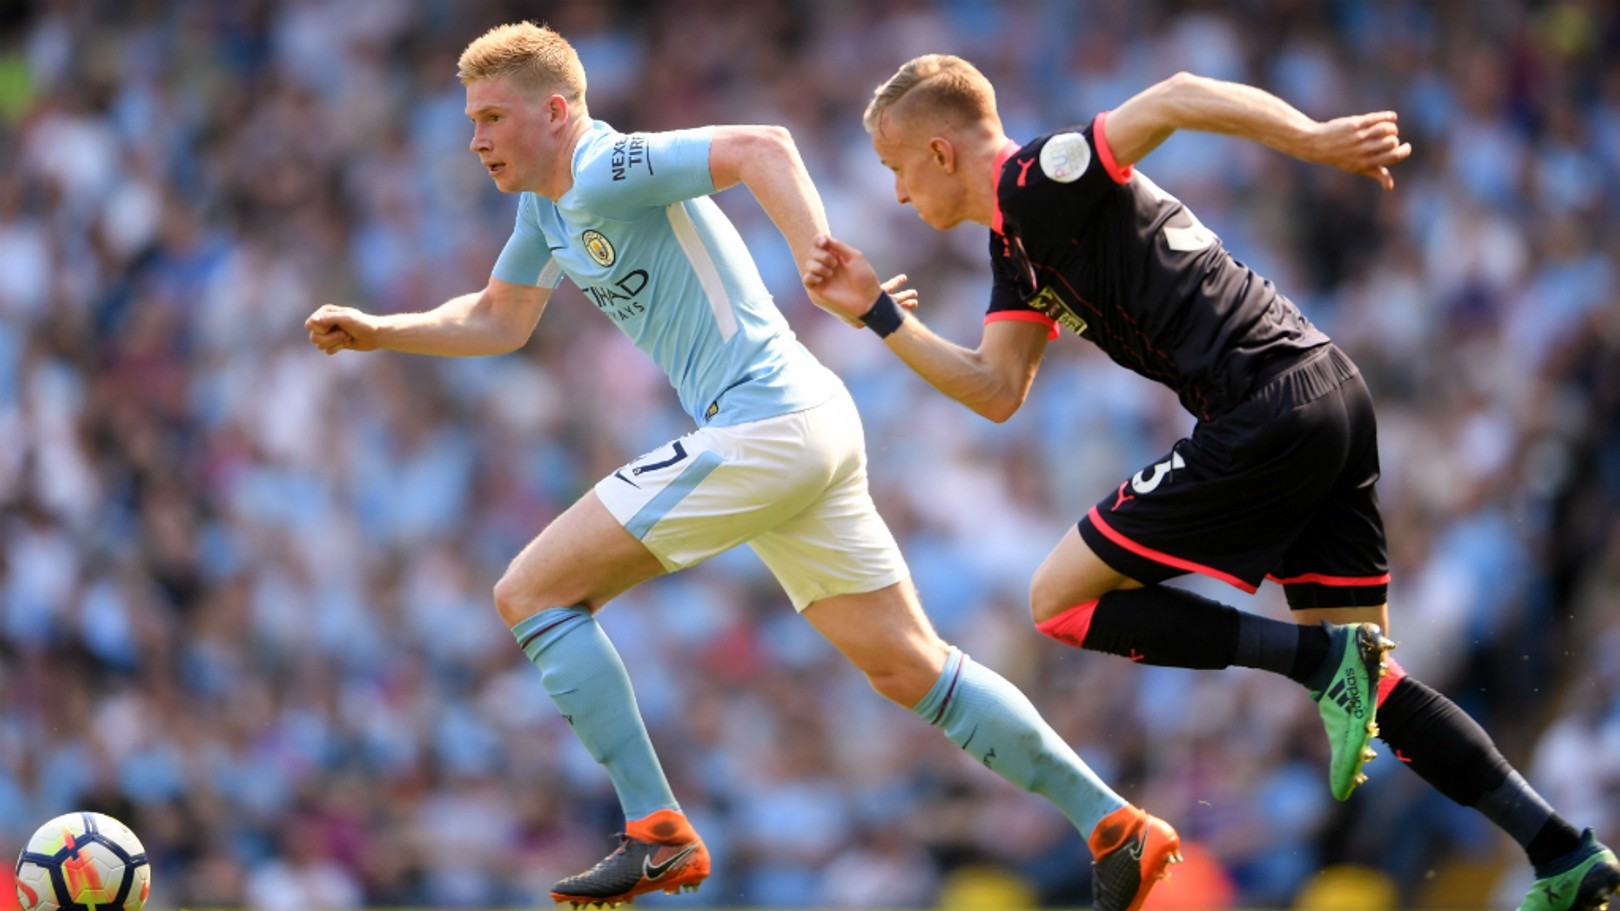 UPDATE: The latest on De Bruyne's knee injury